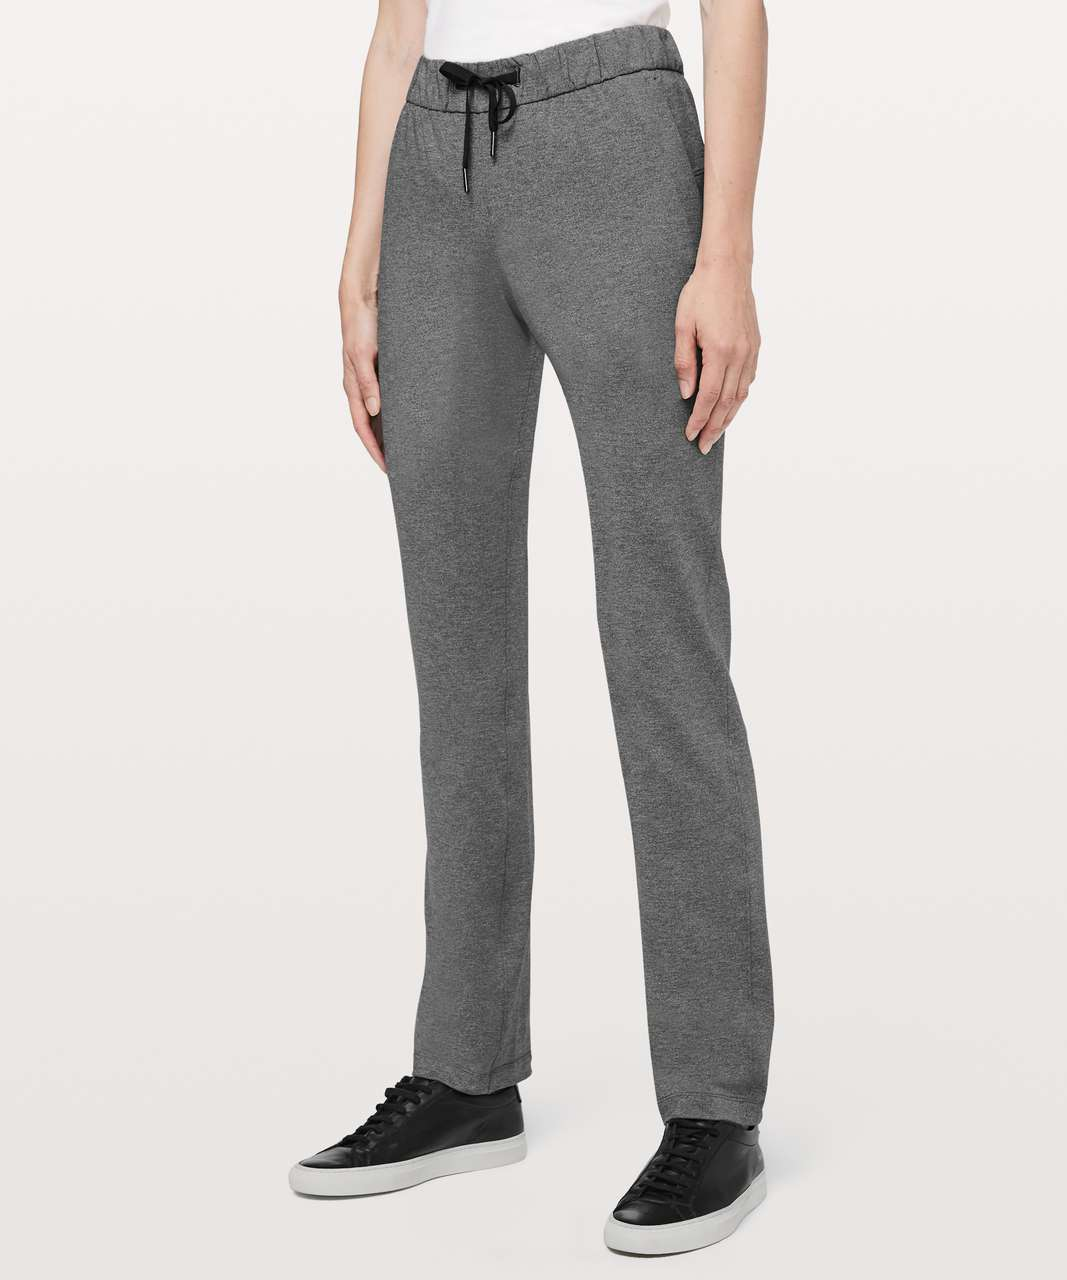 "Lululemon On The Fly Pant Tall 33"" - Heathered Black"